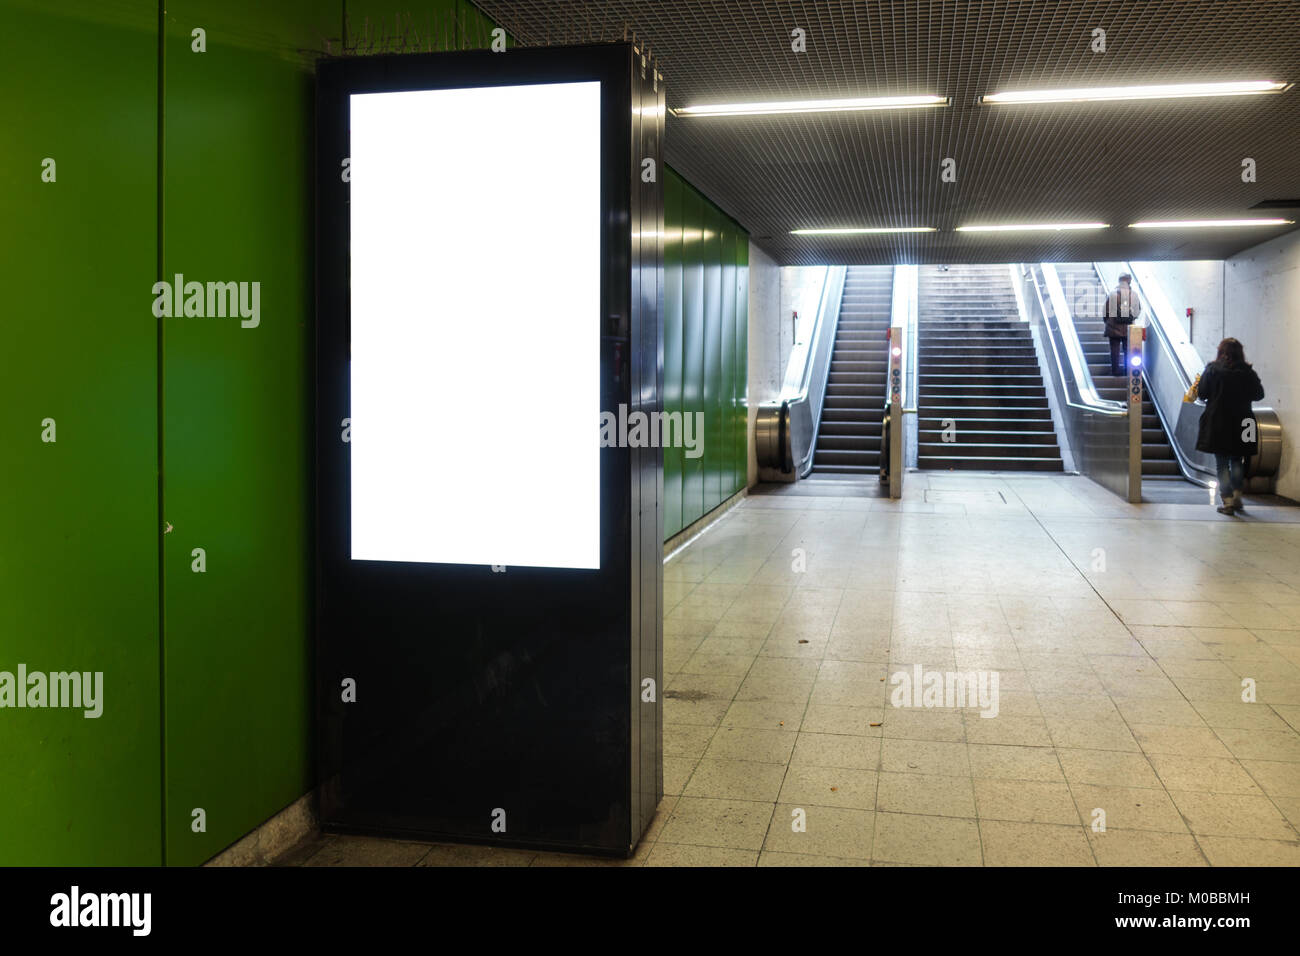 Advertisement Billboard Subway Station Electronic Digital Interior - Stock Image